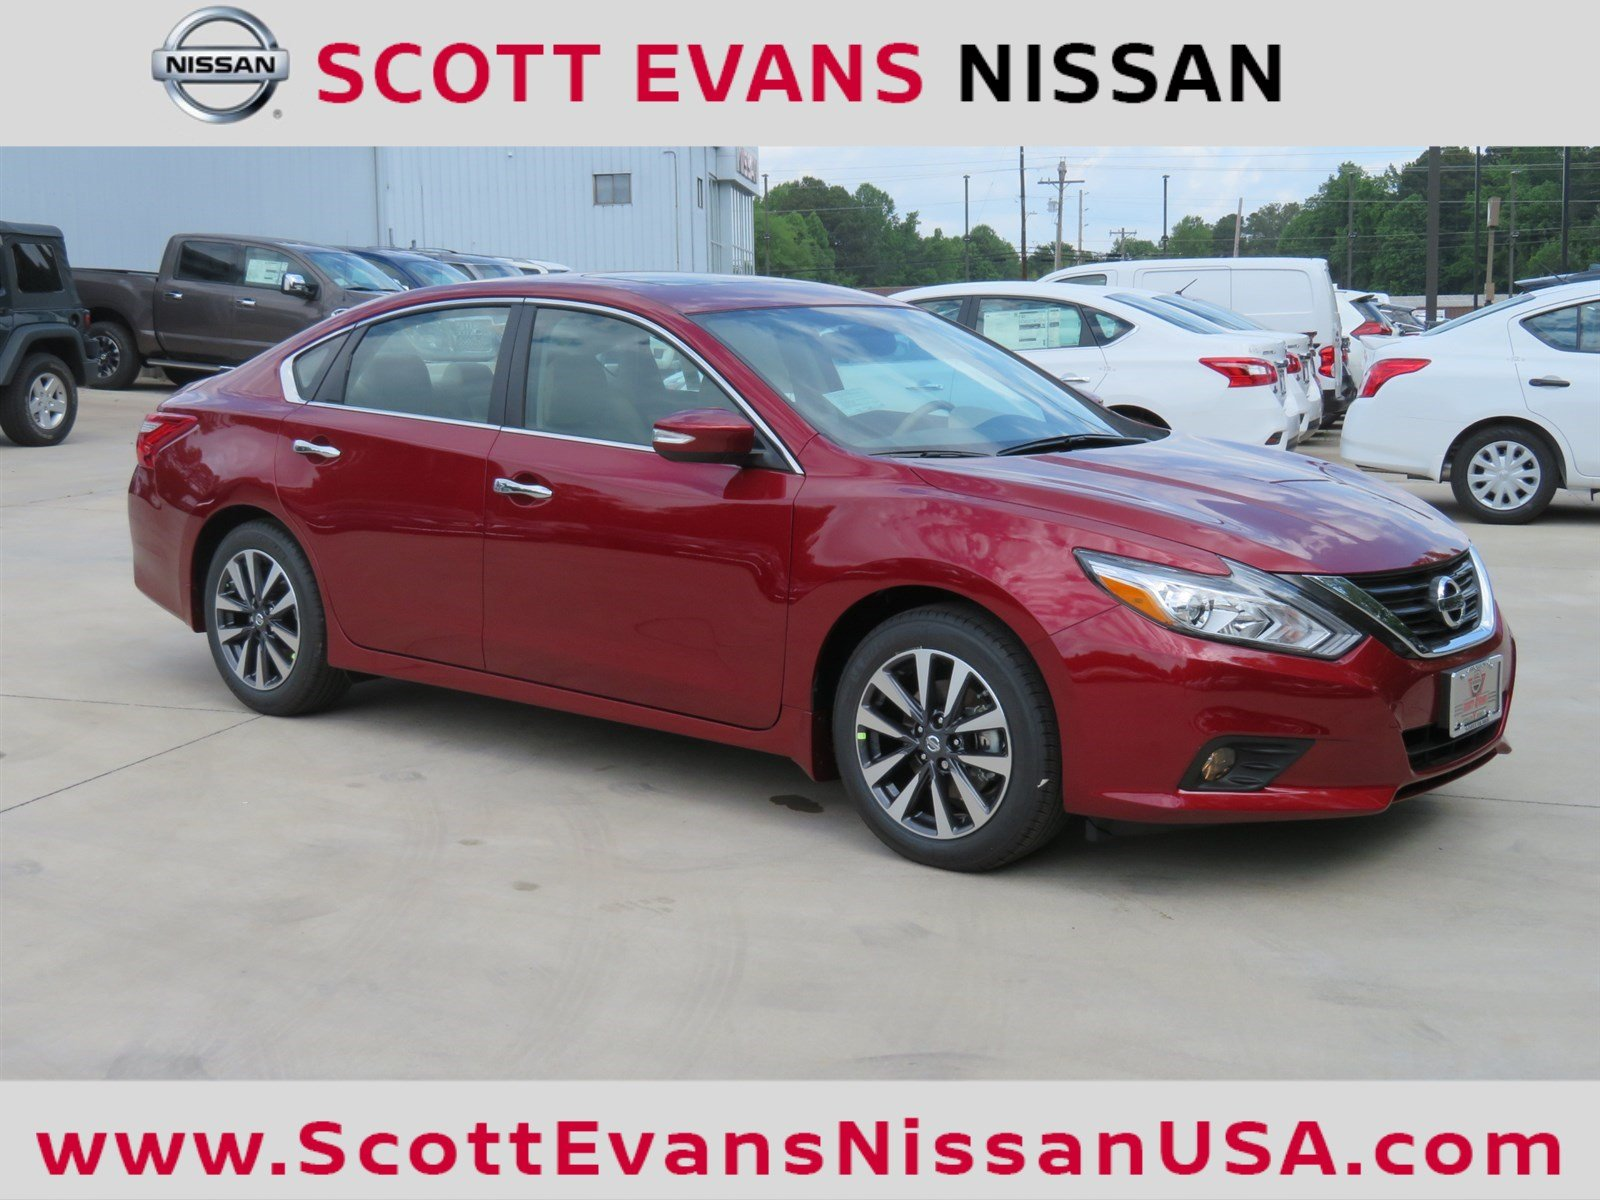 New 2018 Nissan Altima 2 5 SV 4dr Car in Carrollton